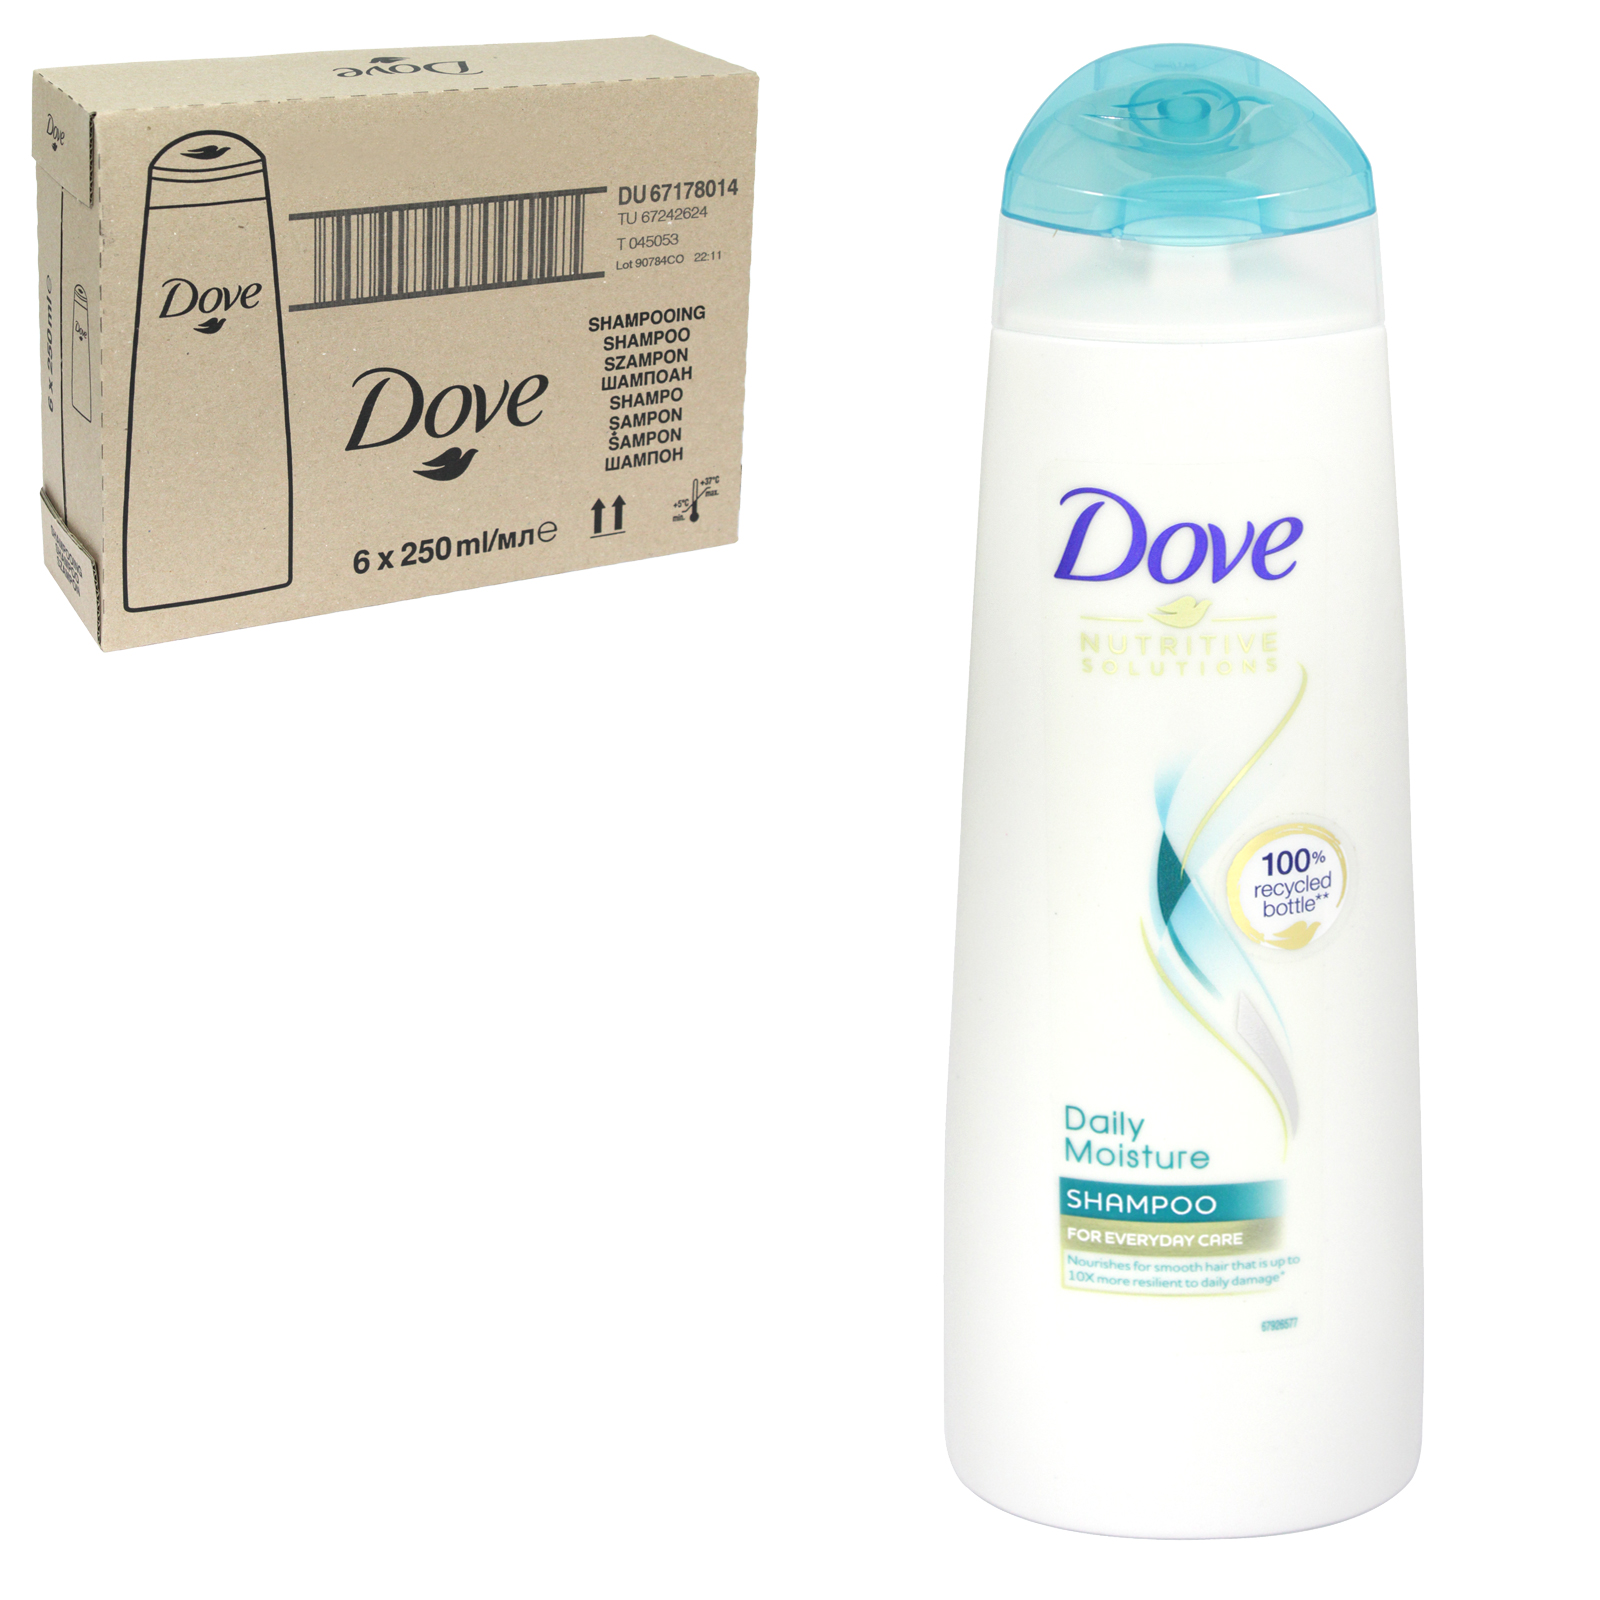 DOVE SHAMPOO 250ML DAILY MOISTURE X 6